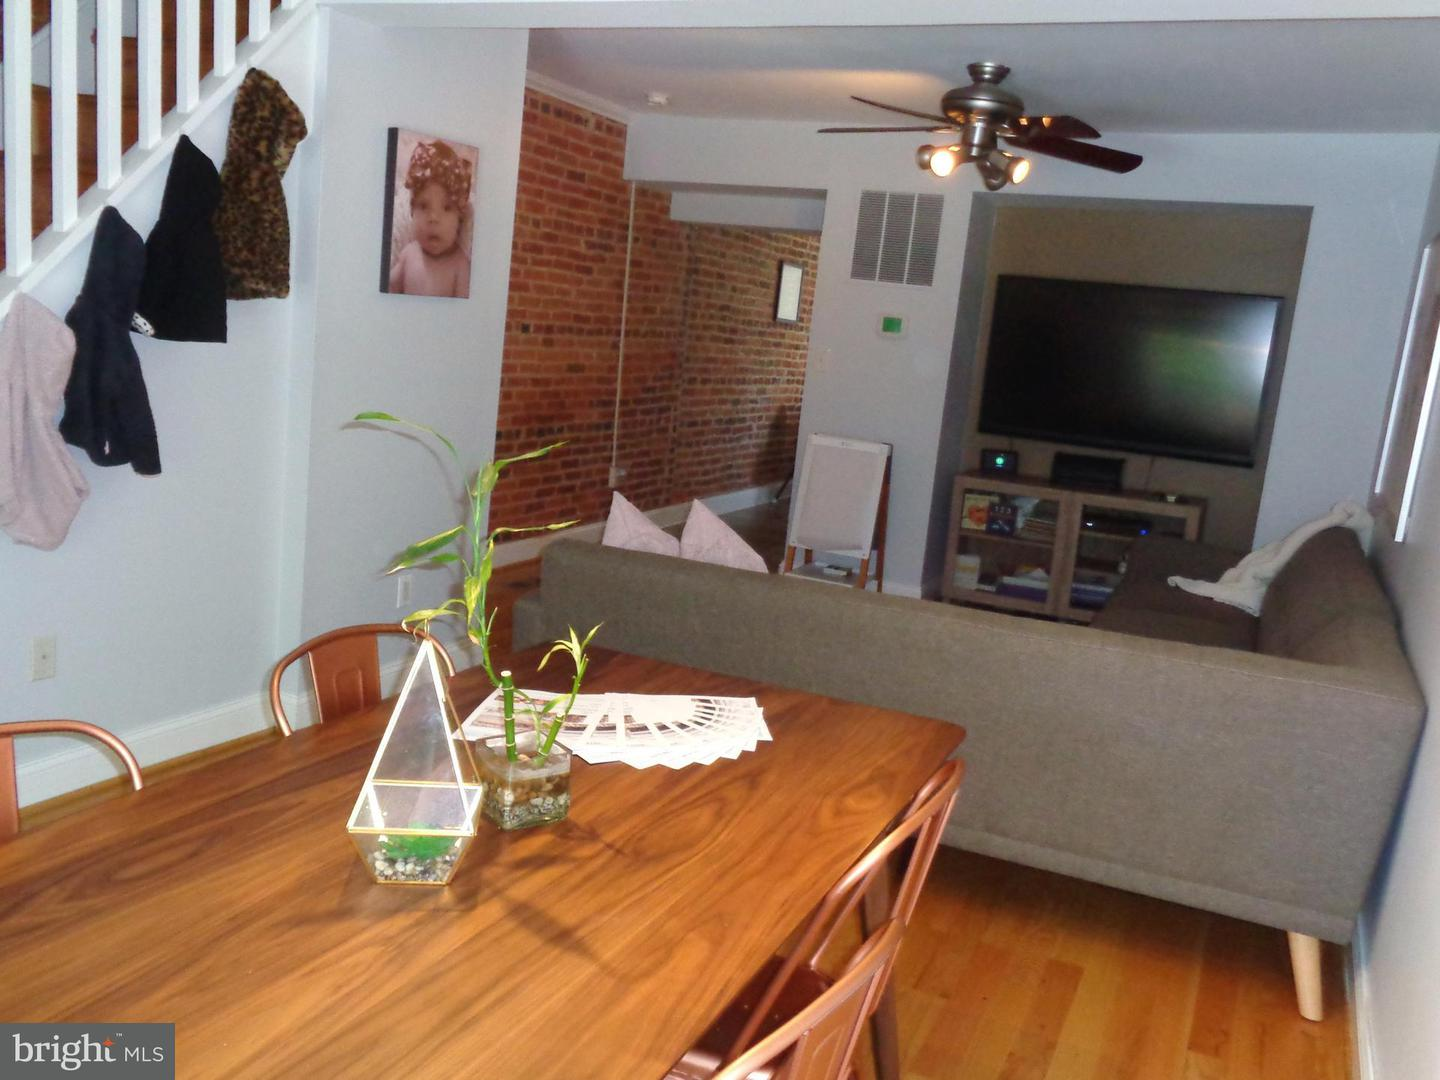 Other Residential for Rent at 2312 Essex St Baltimore, Maryland 21224 United States